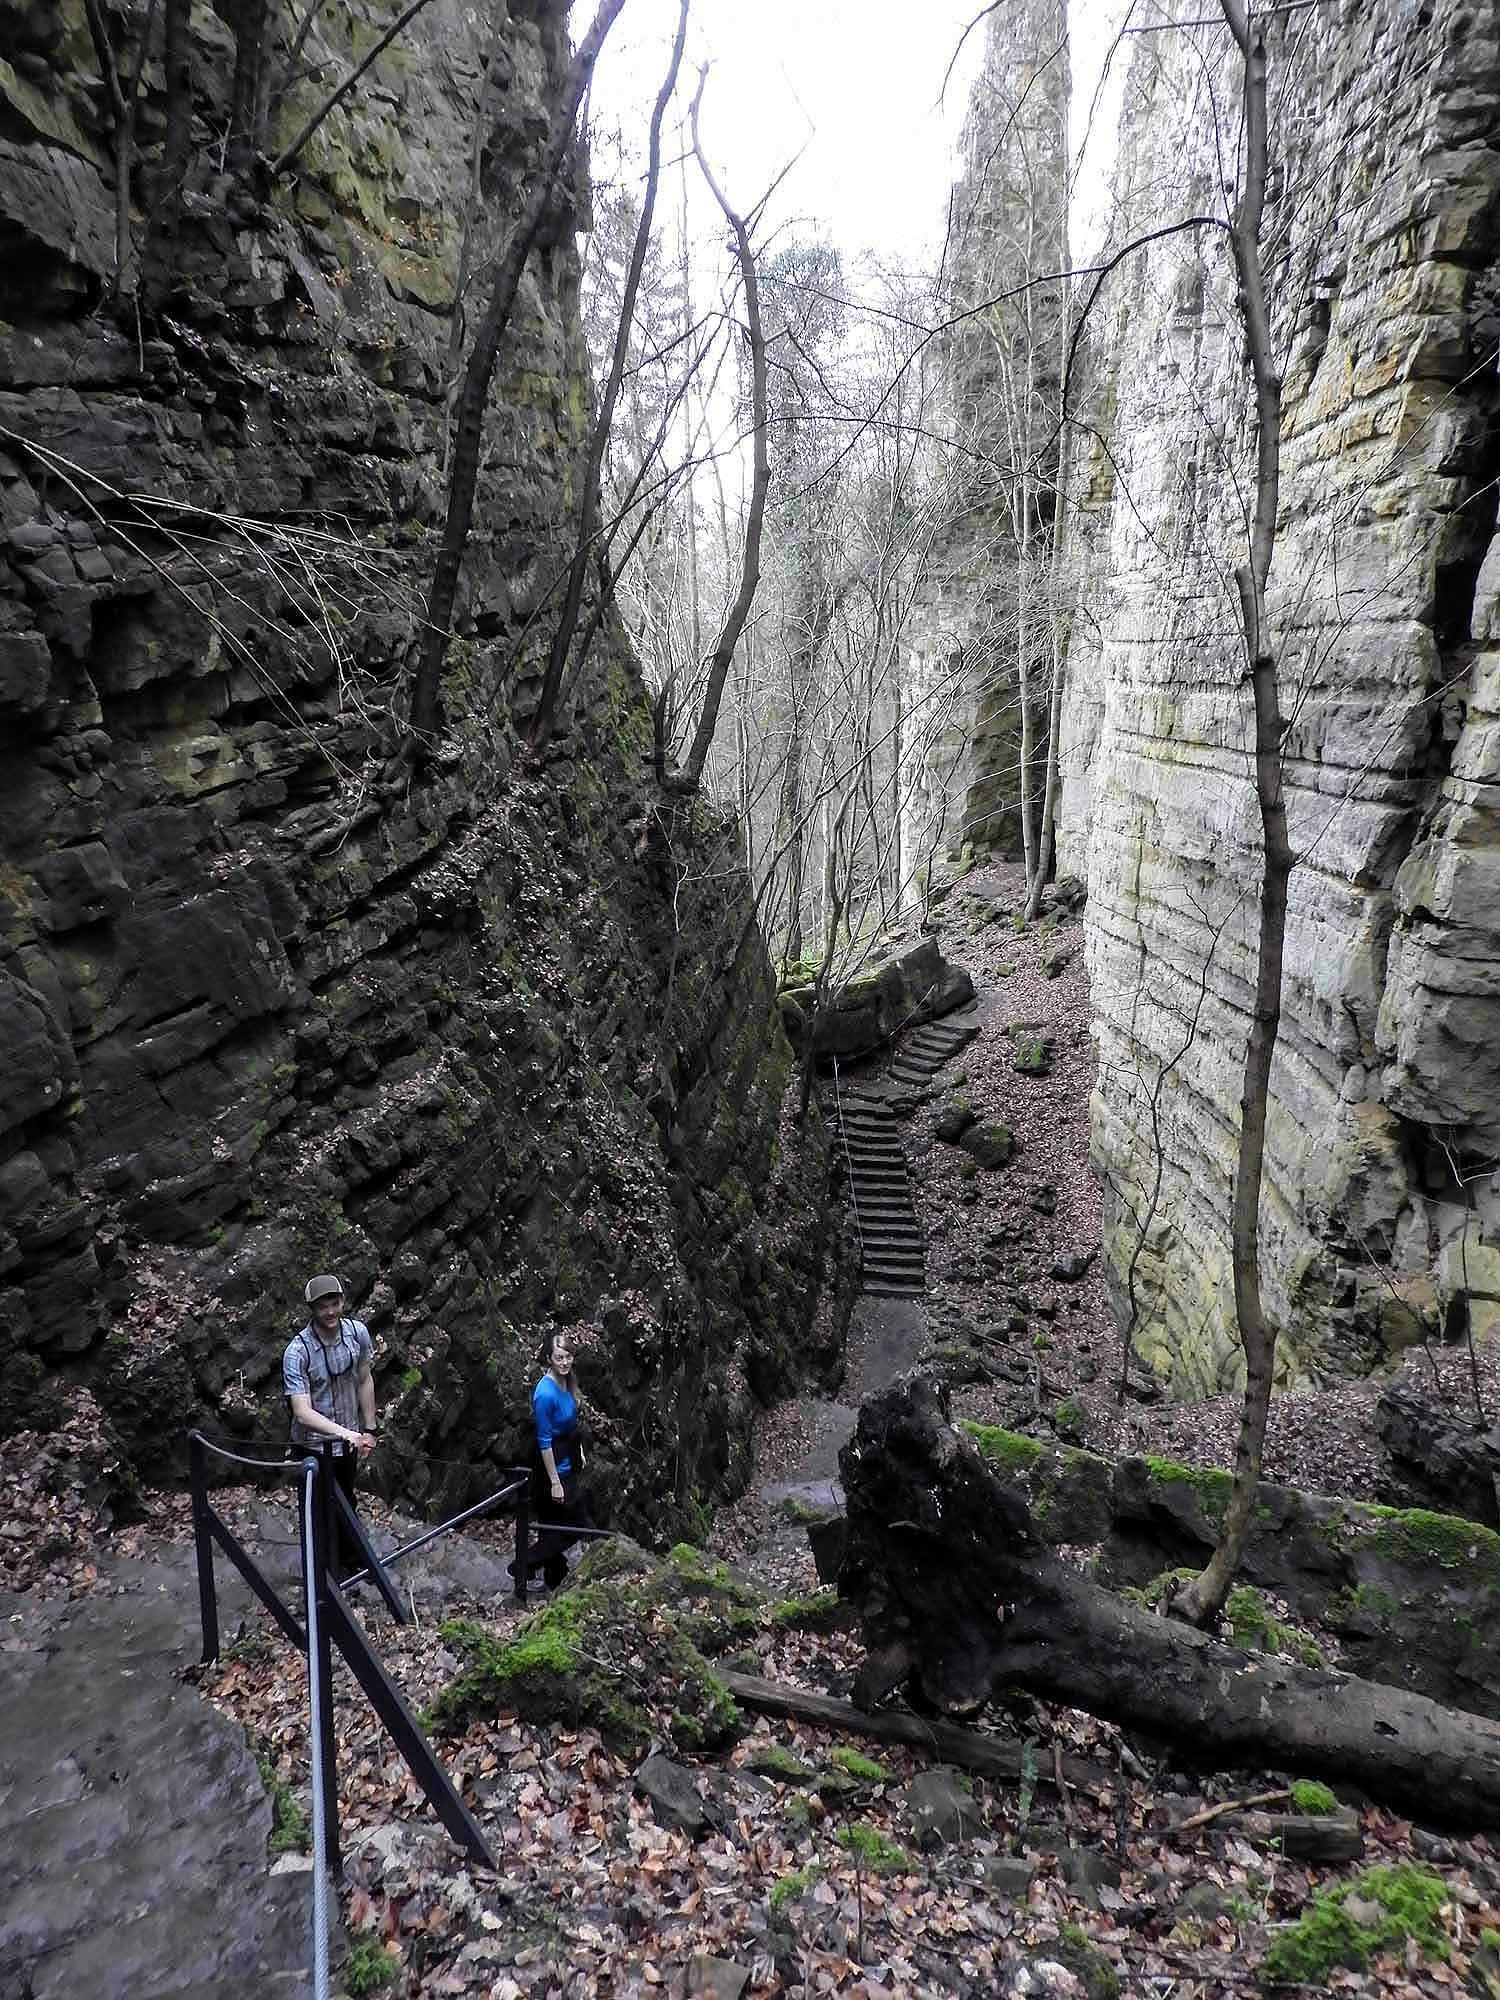 luxembourg-hike-hohllay-caves-echternach-little-switzerland-rock-stairway.jpg